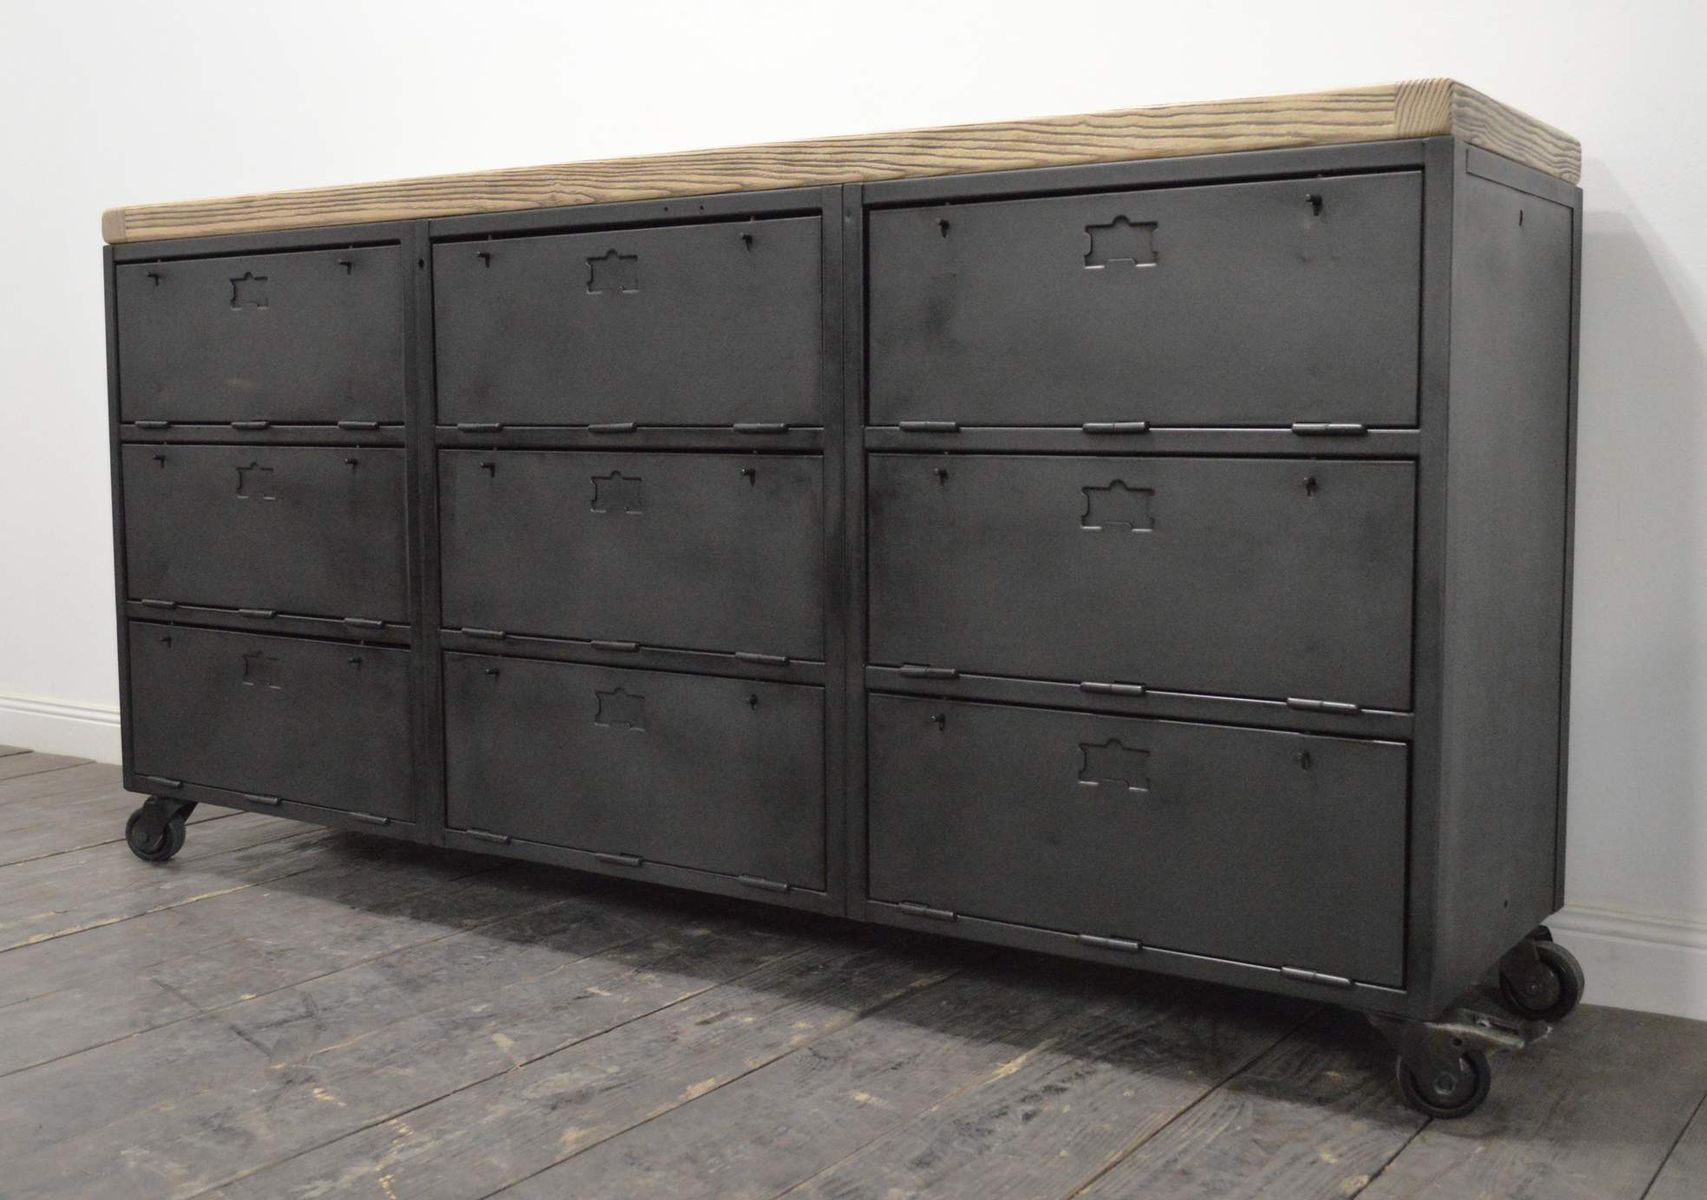 industrielles franz sisches vintage buffet mit neun f chern bei pamono kaufen. Black Bedroom Furniture Sets. Home Design Ideas